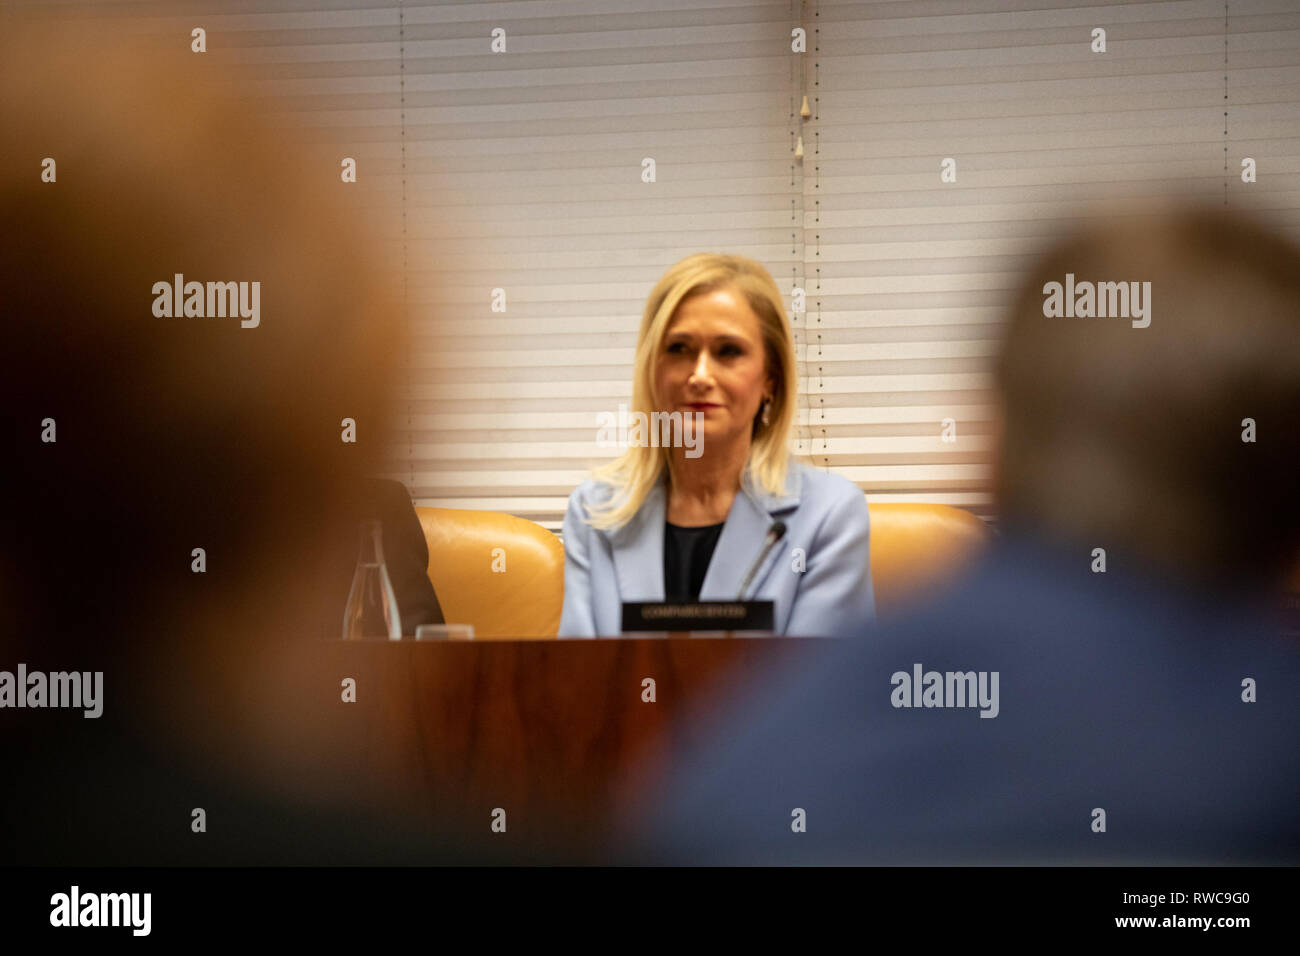 Madrid, Spain. 6th Mar, 2019. The former president of the Community of Madrid Cristina Cifuentes (R) with her lawyer (not seen) are seen attending the research commission of universities of the Assembly of Madrid to appear in relation to the case Master, which is investigated for alleged crime of falsification of documents. Credit: Jesus Hellin/SOPA Images/ZUMA Wire/Alamy Live News - Stock Image